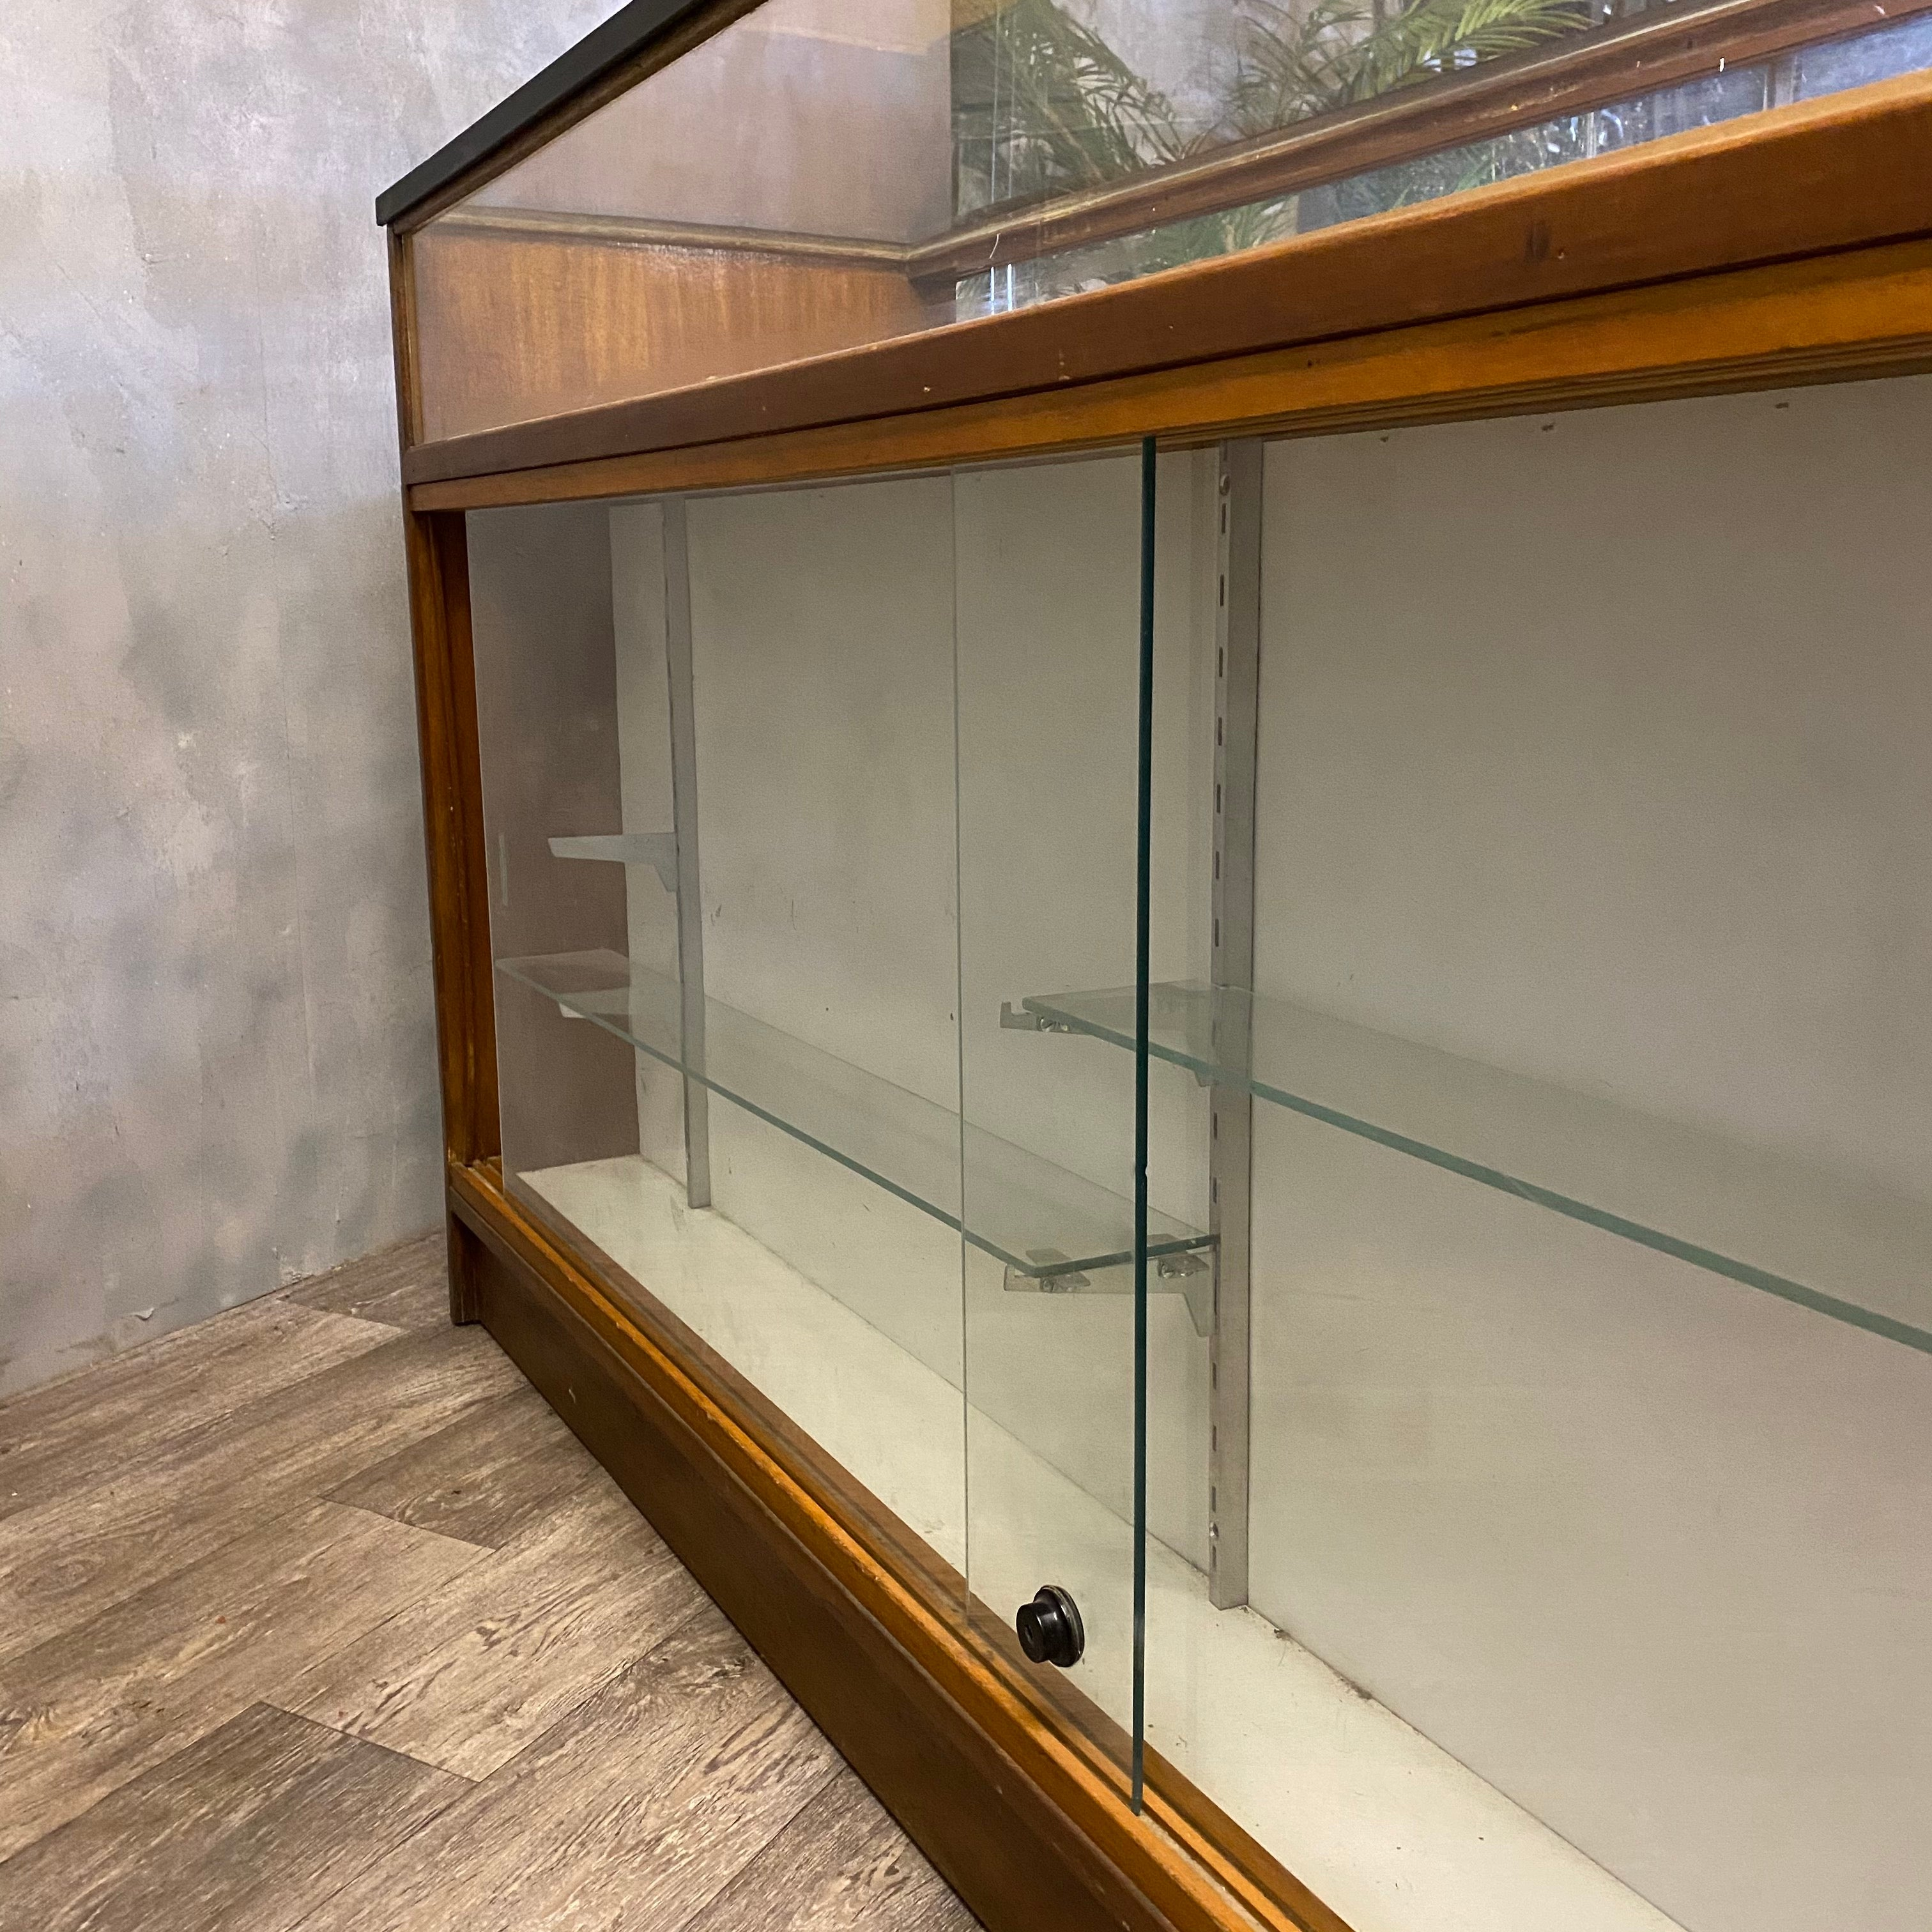 Glass shelving in shop counter